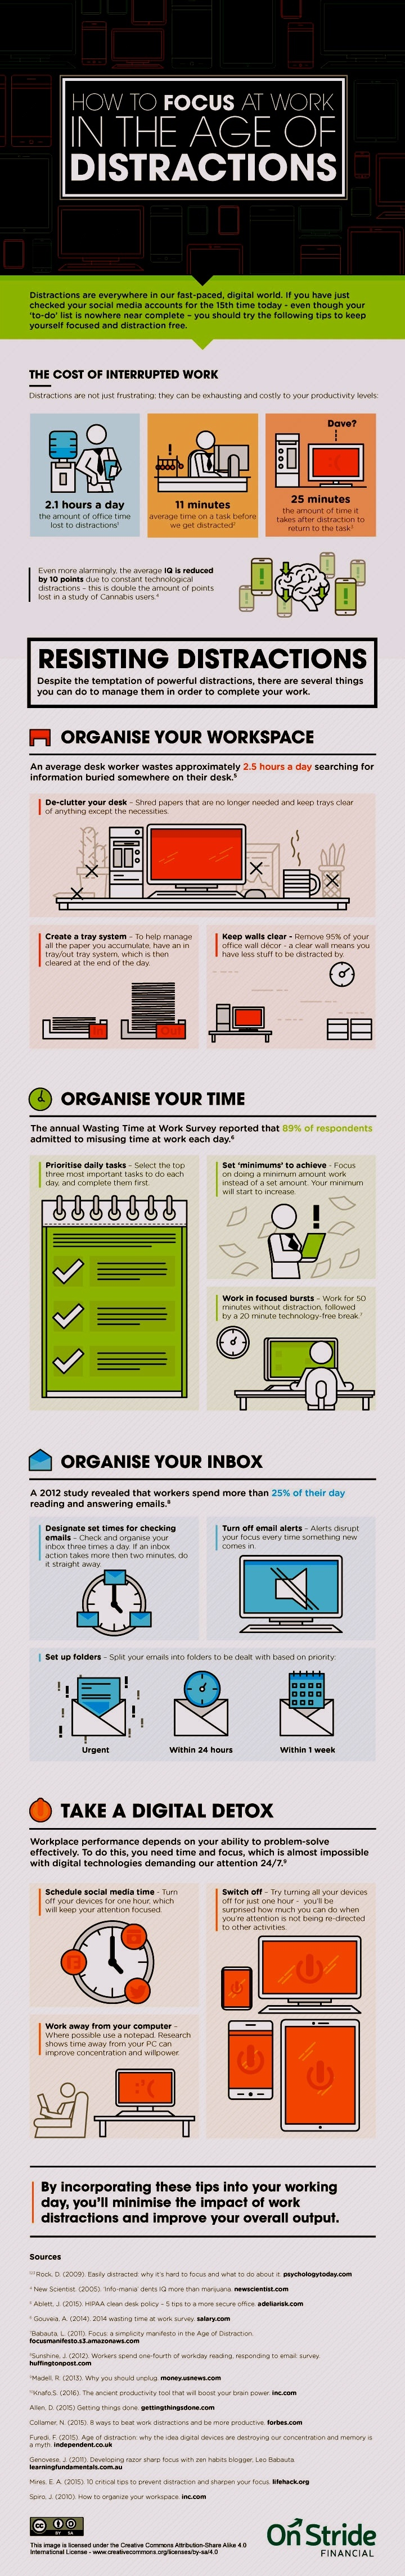 How-to-focus-at-work-in-the-age-of-distractions-DV2.jpg